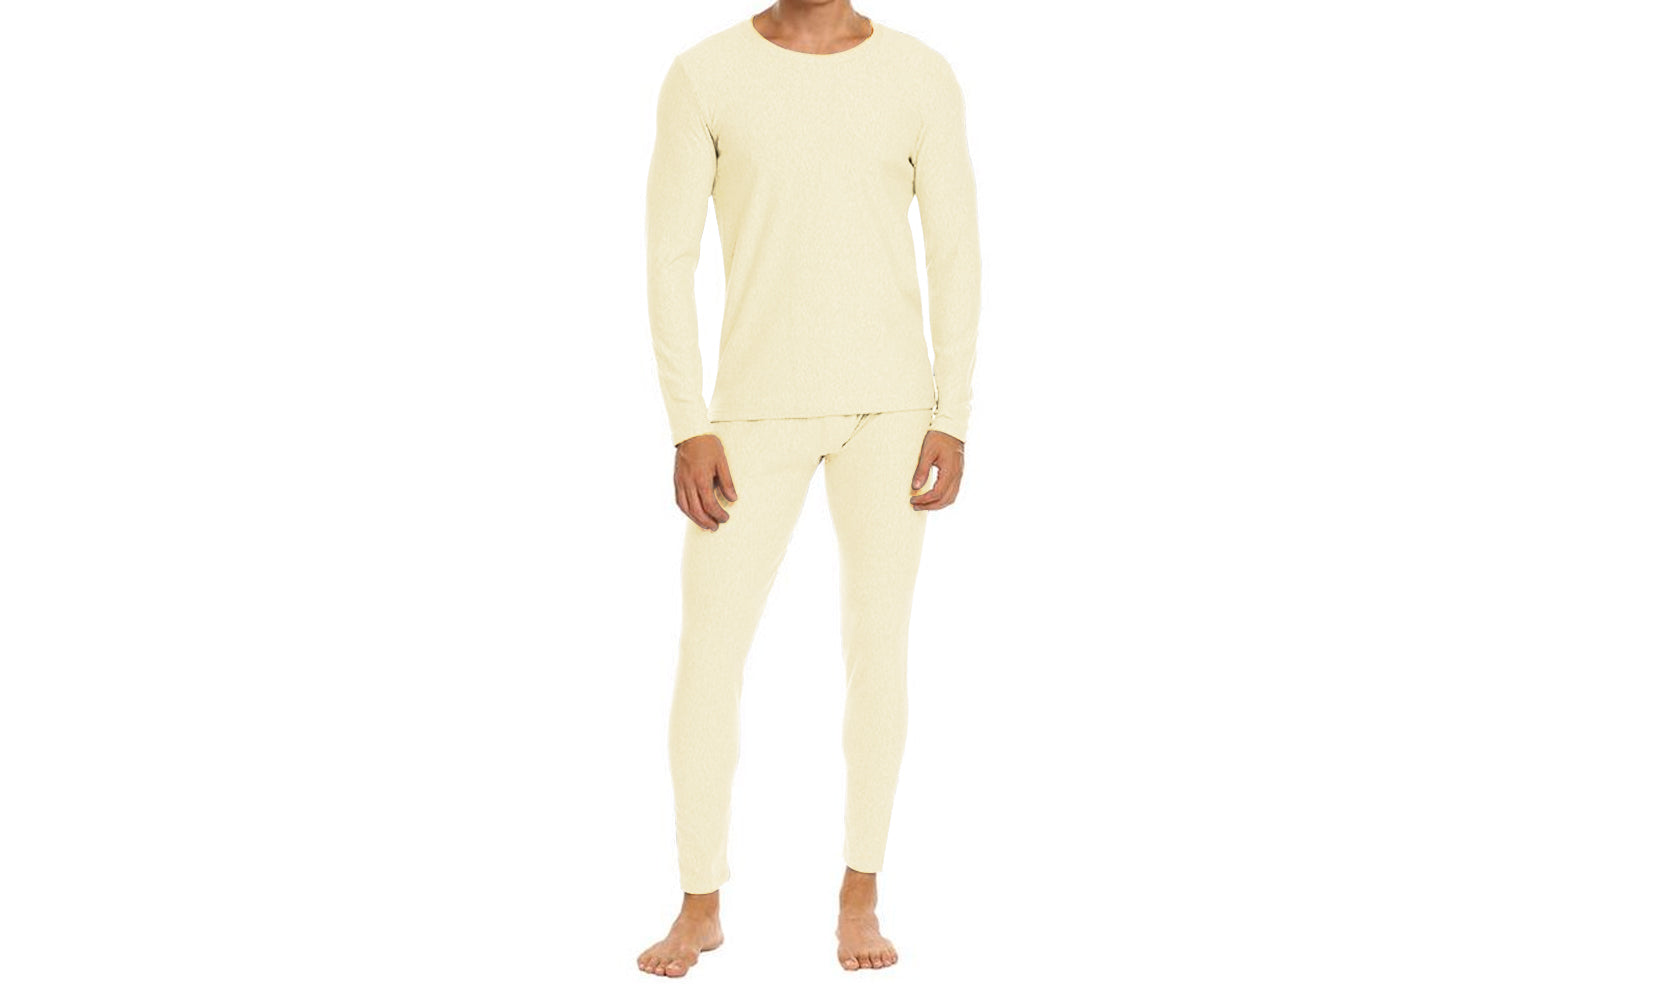 2-Piece: Men's Thermal Set